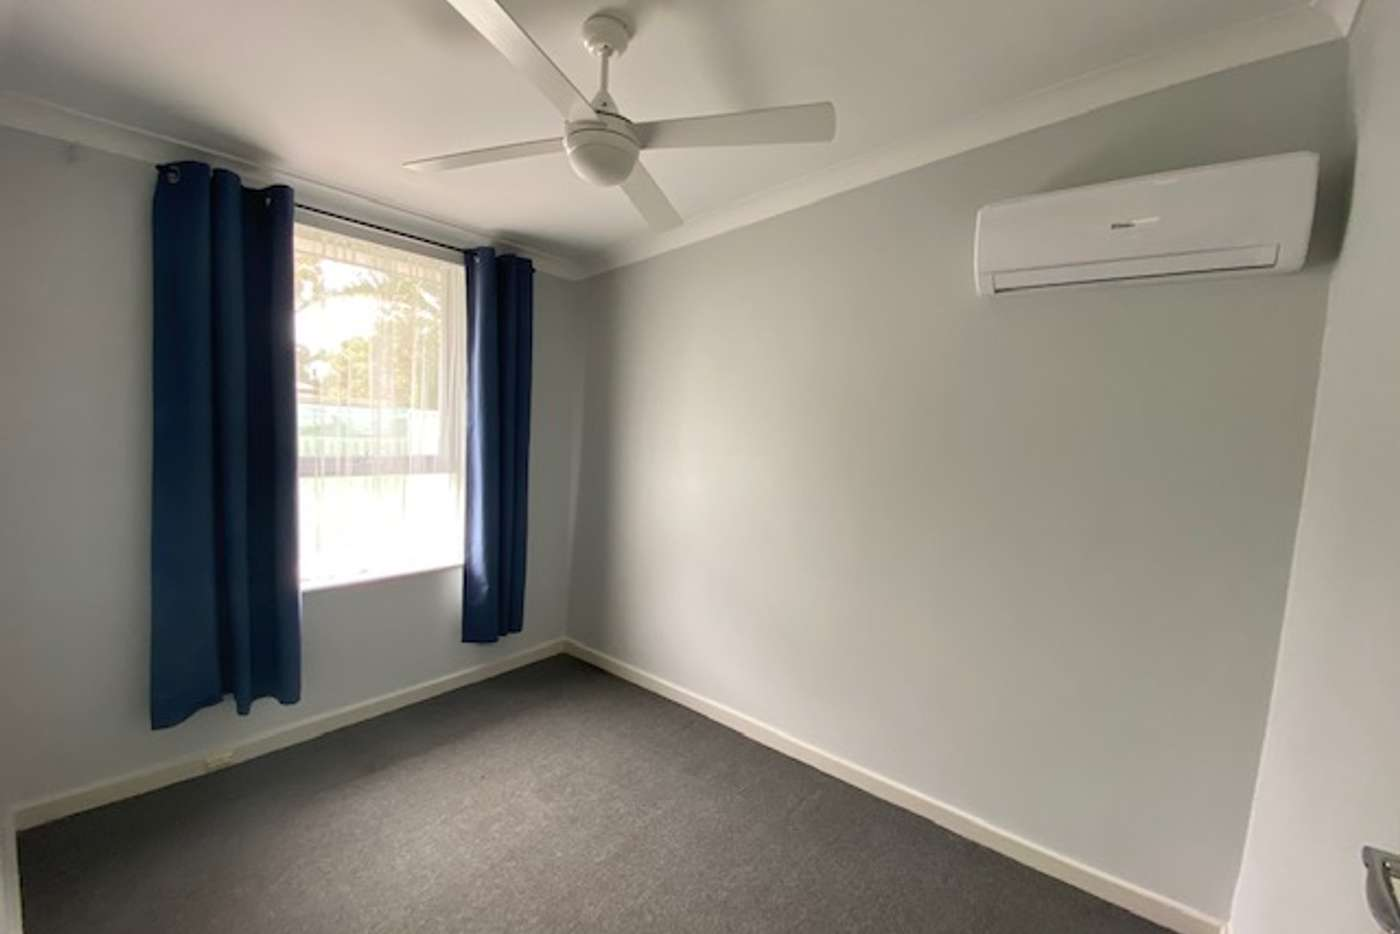 Seventh view of Homely house listing, 13 Belyea Street, Gosnells WA 6110